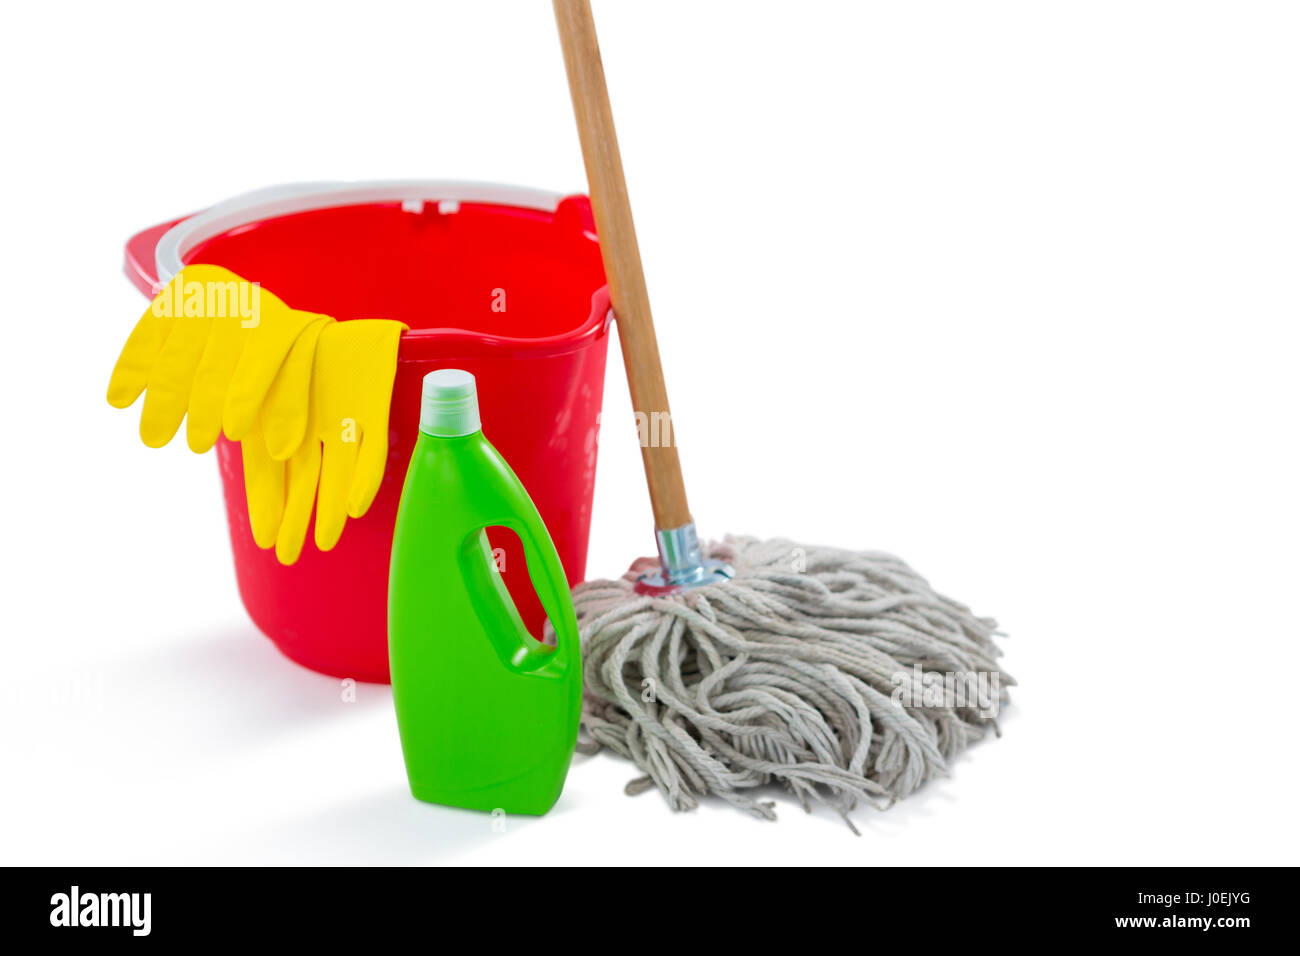 Close up of cleaning products and mop with bucket against white background - Stock Image